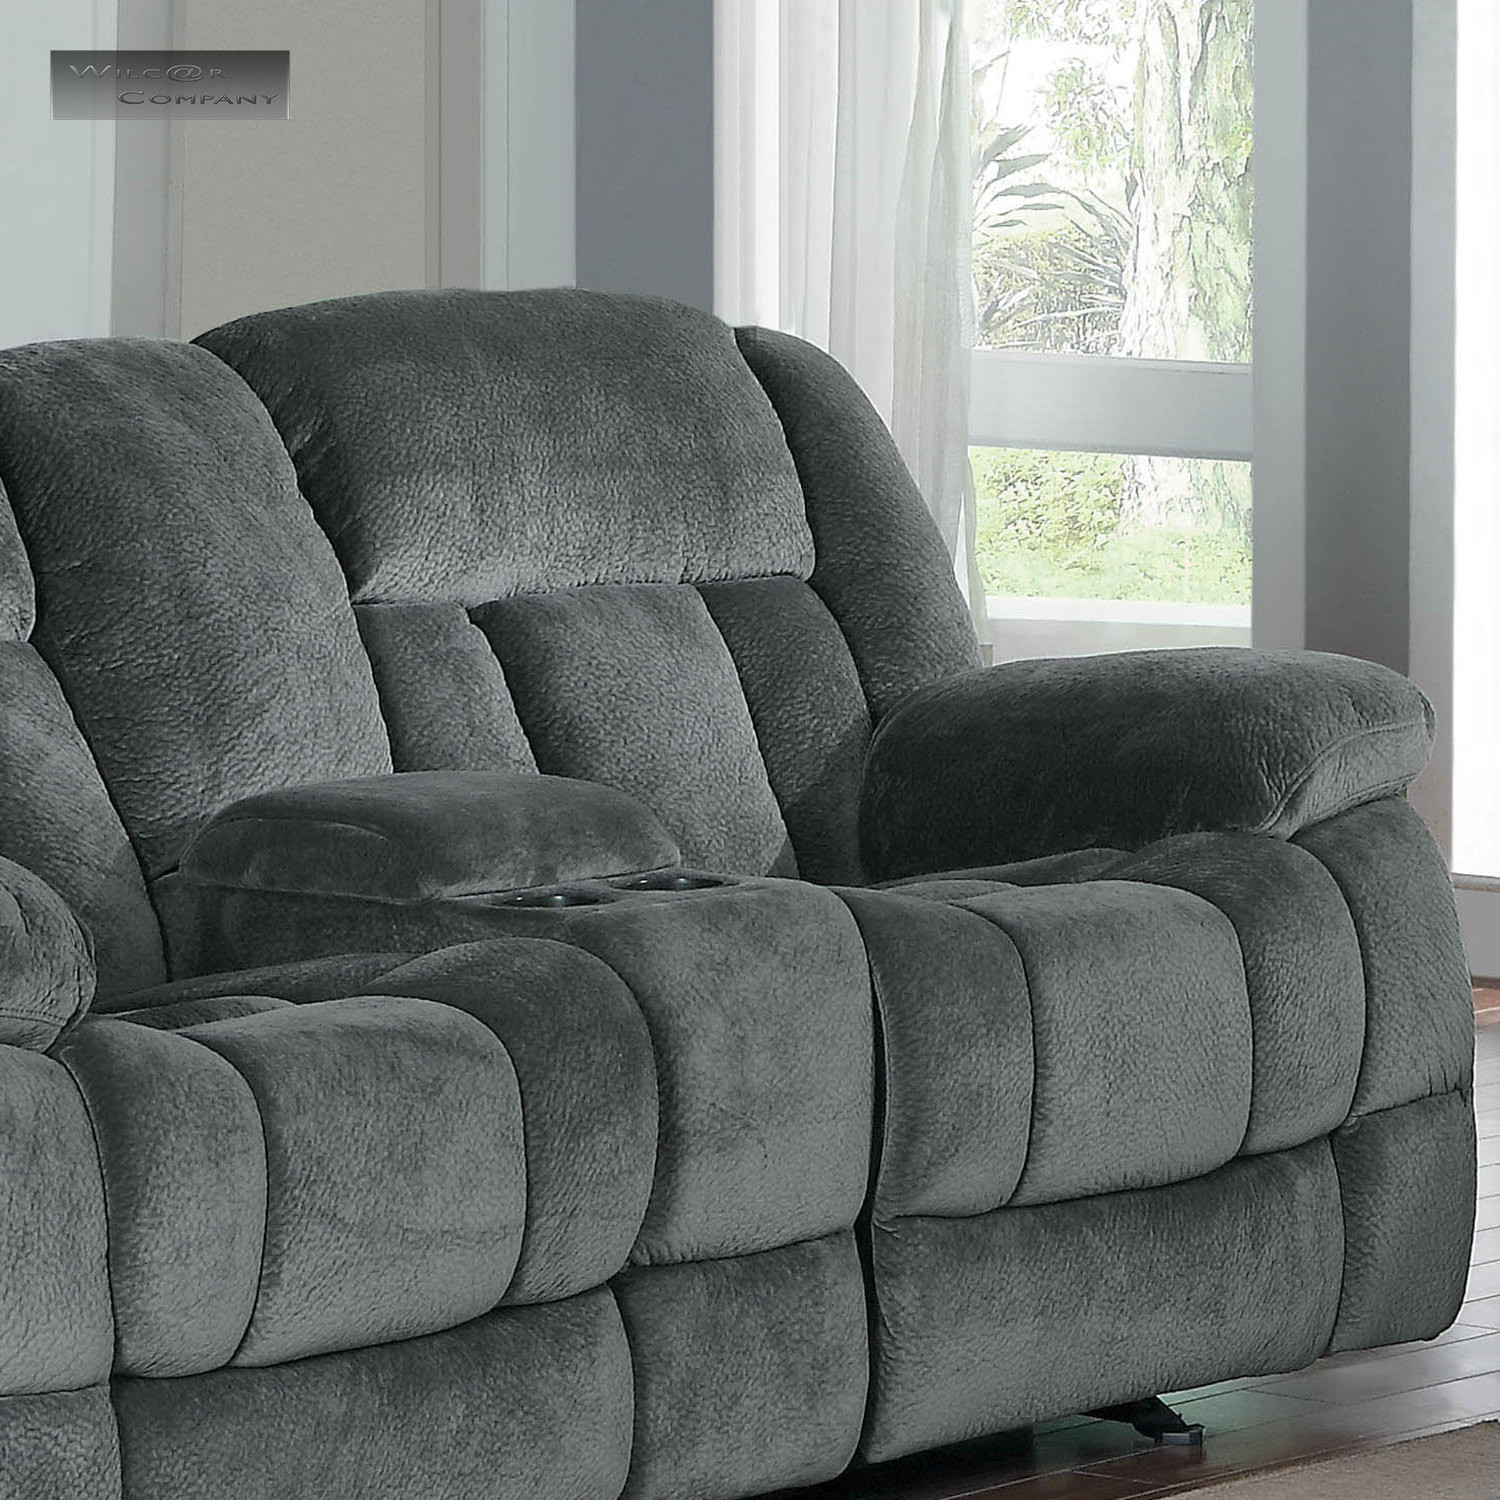 Best ideas about Lazyboy Reclining Sofa . Save or Pin New Grey Rocker Glider Double Recliner Loveseat Lazy Sofa Now.